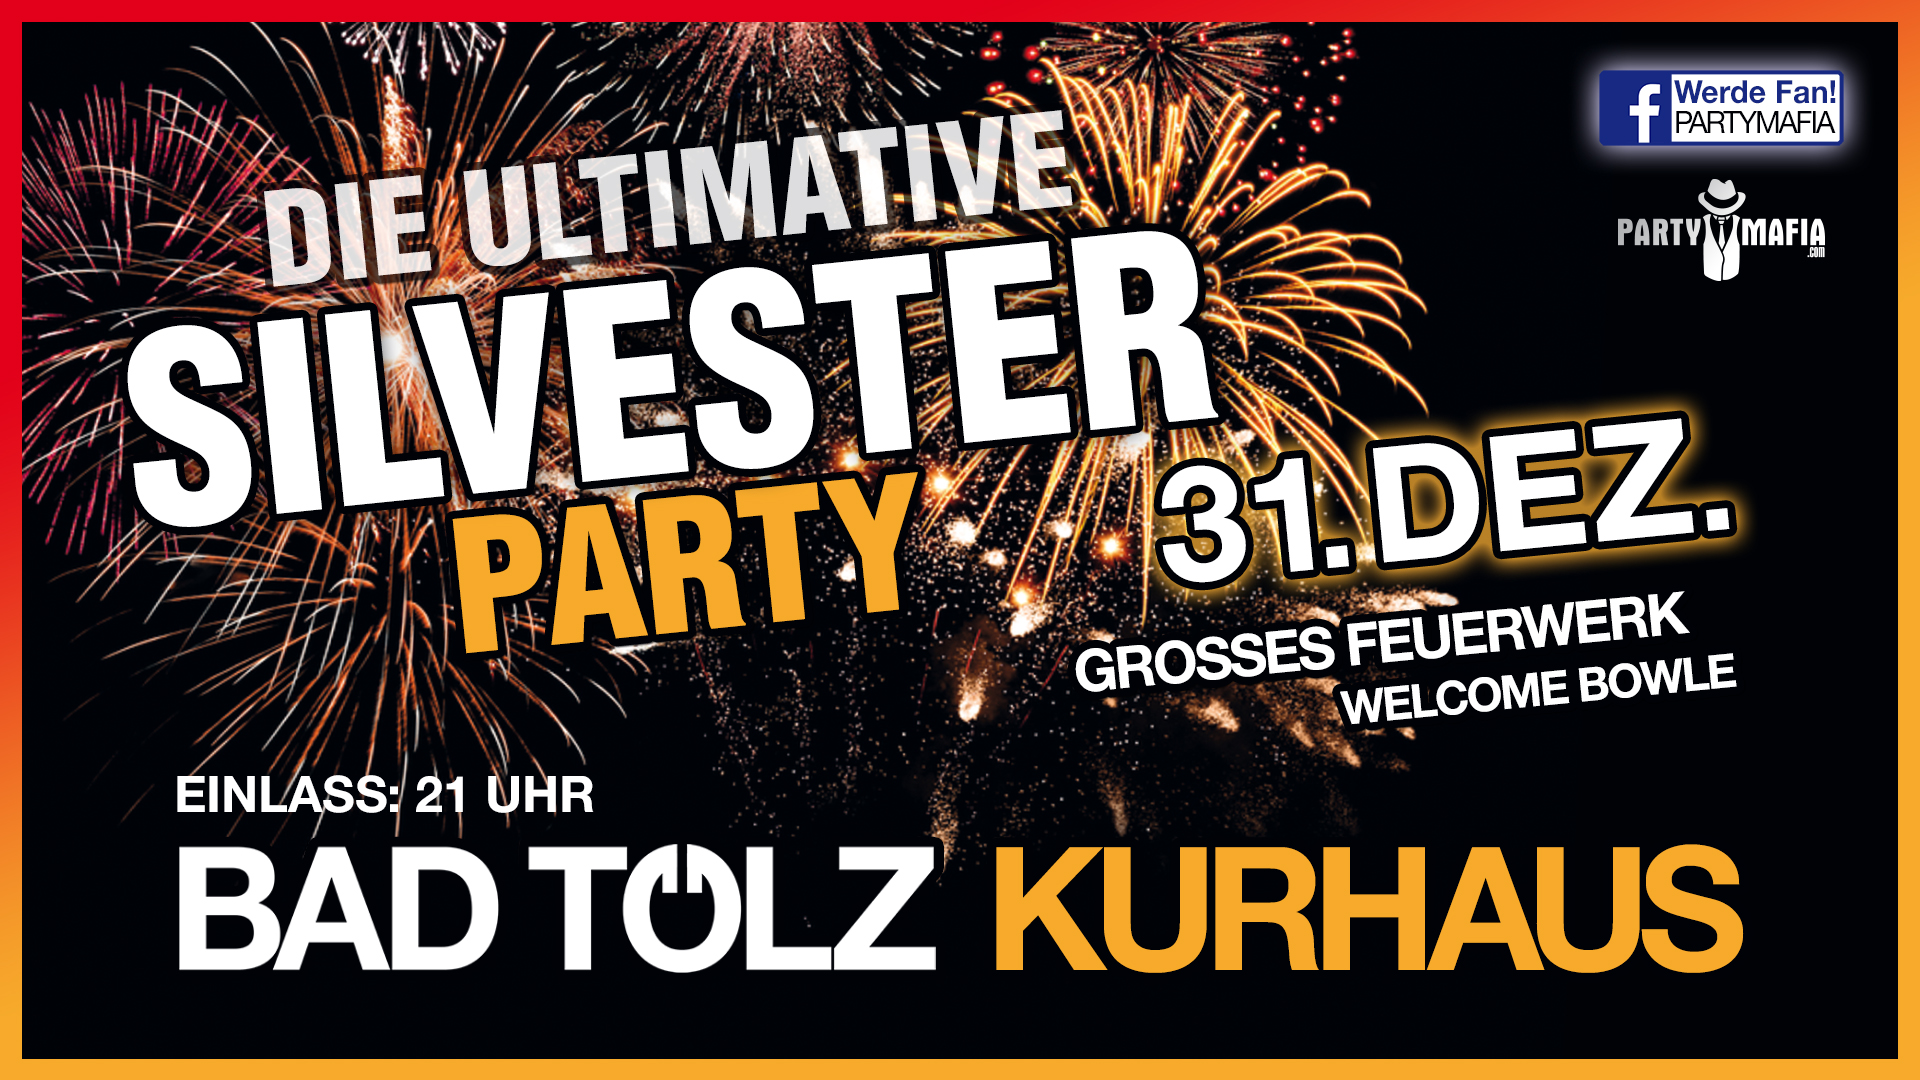 Die ultimative Silvesterparty 2018